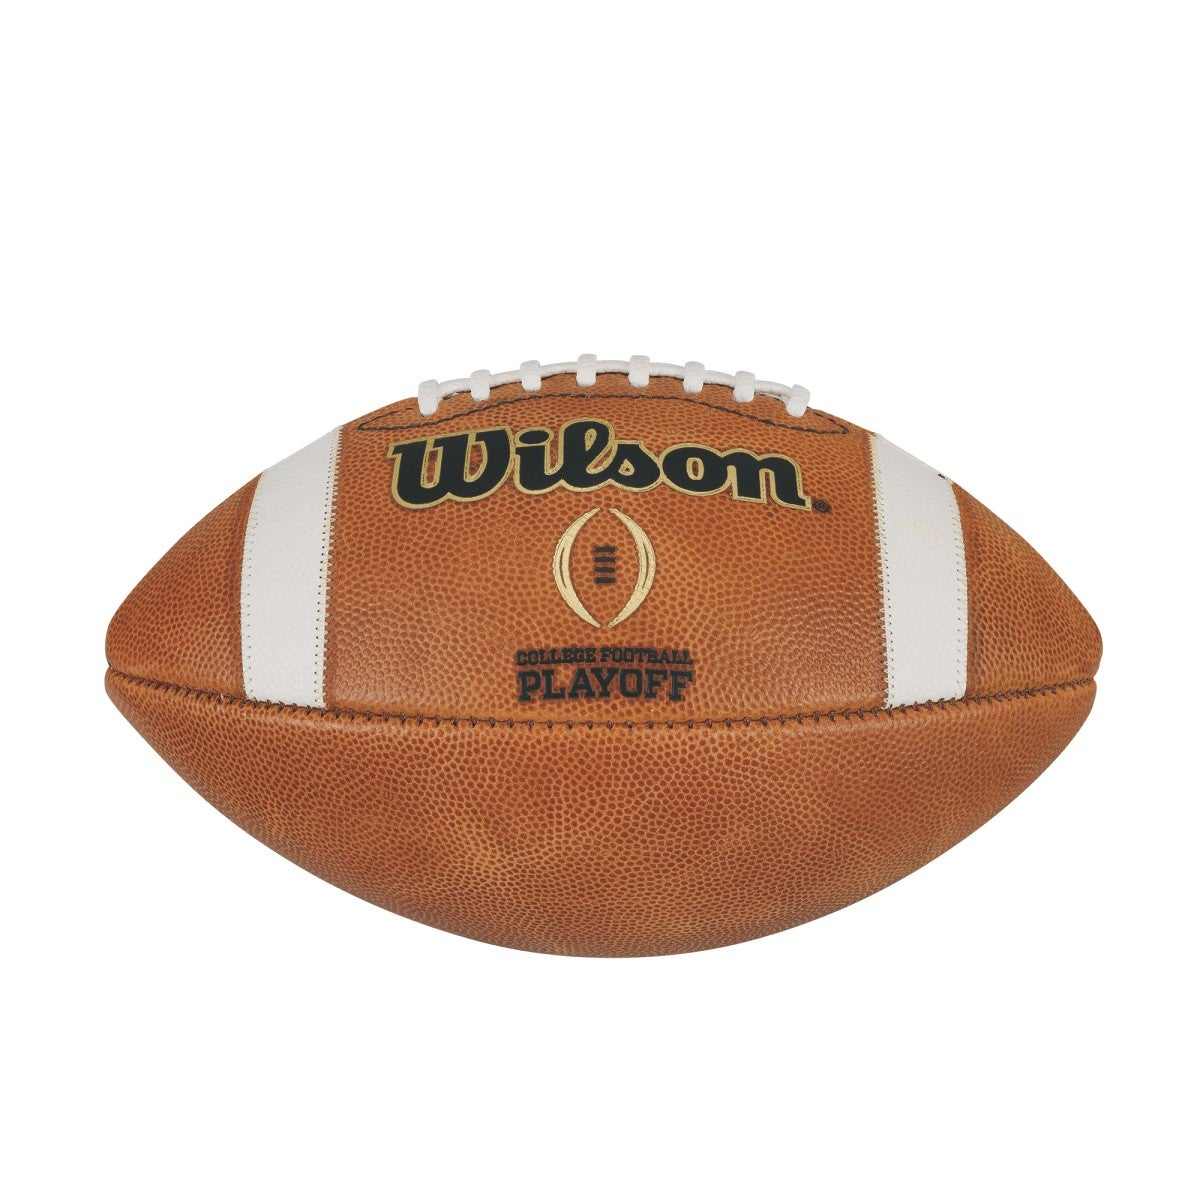 COLLEGE FOOTBALL PLAYOFF GAME BALL - OFFICIAL